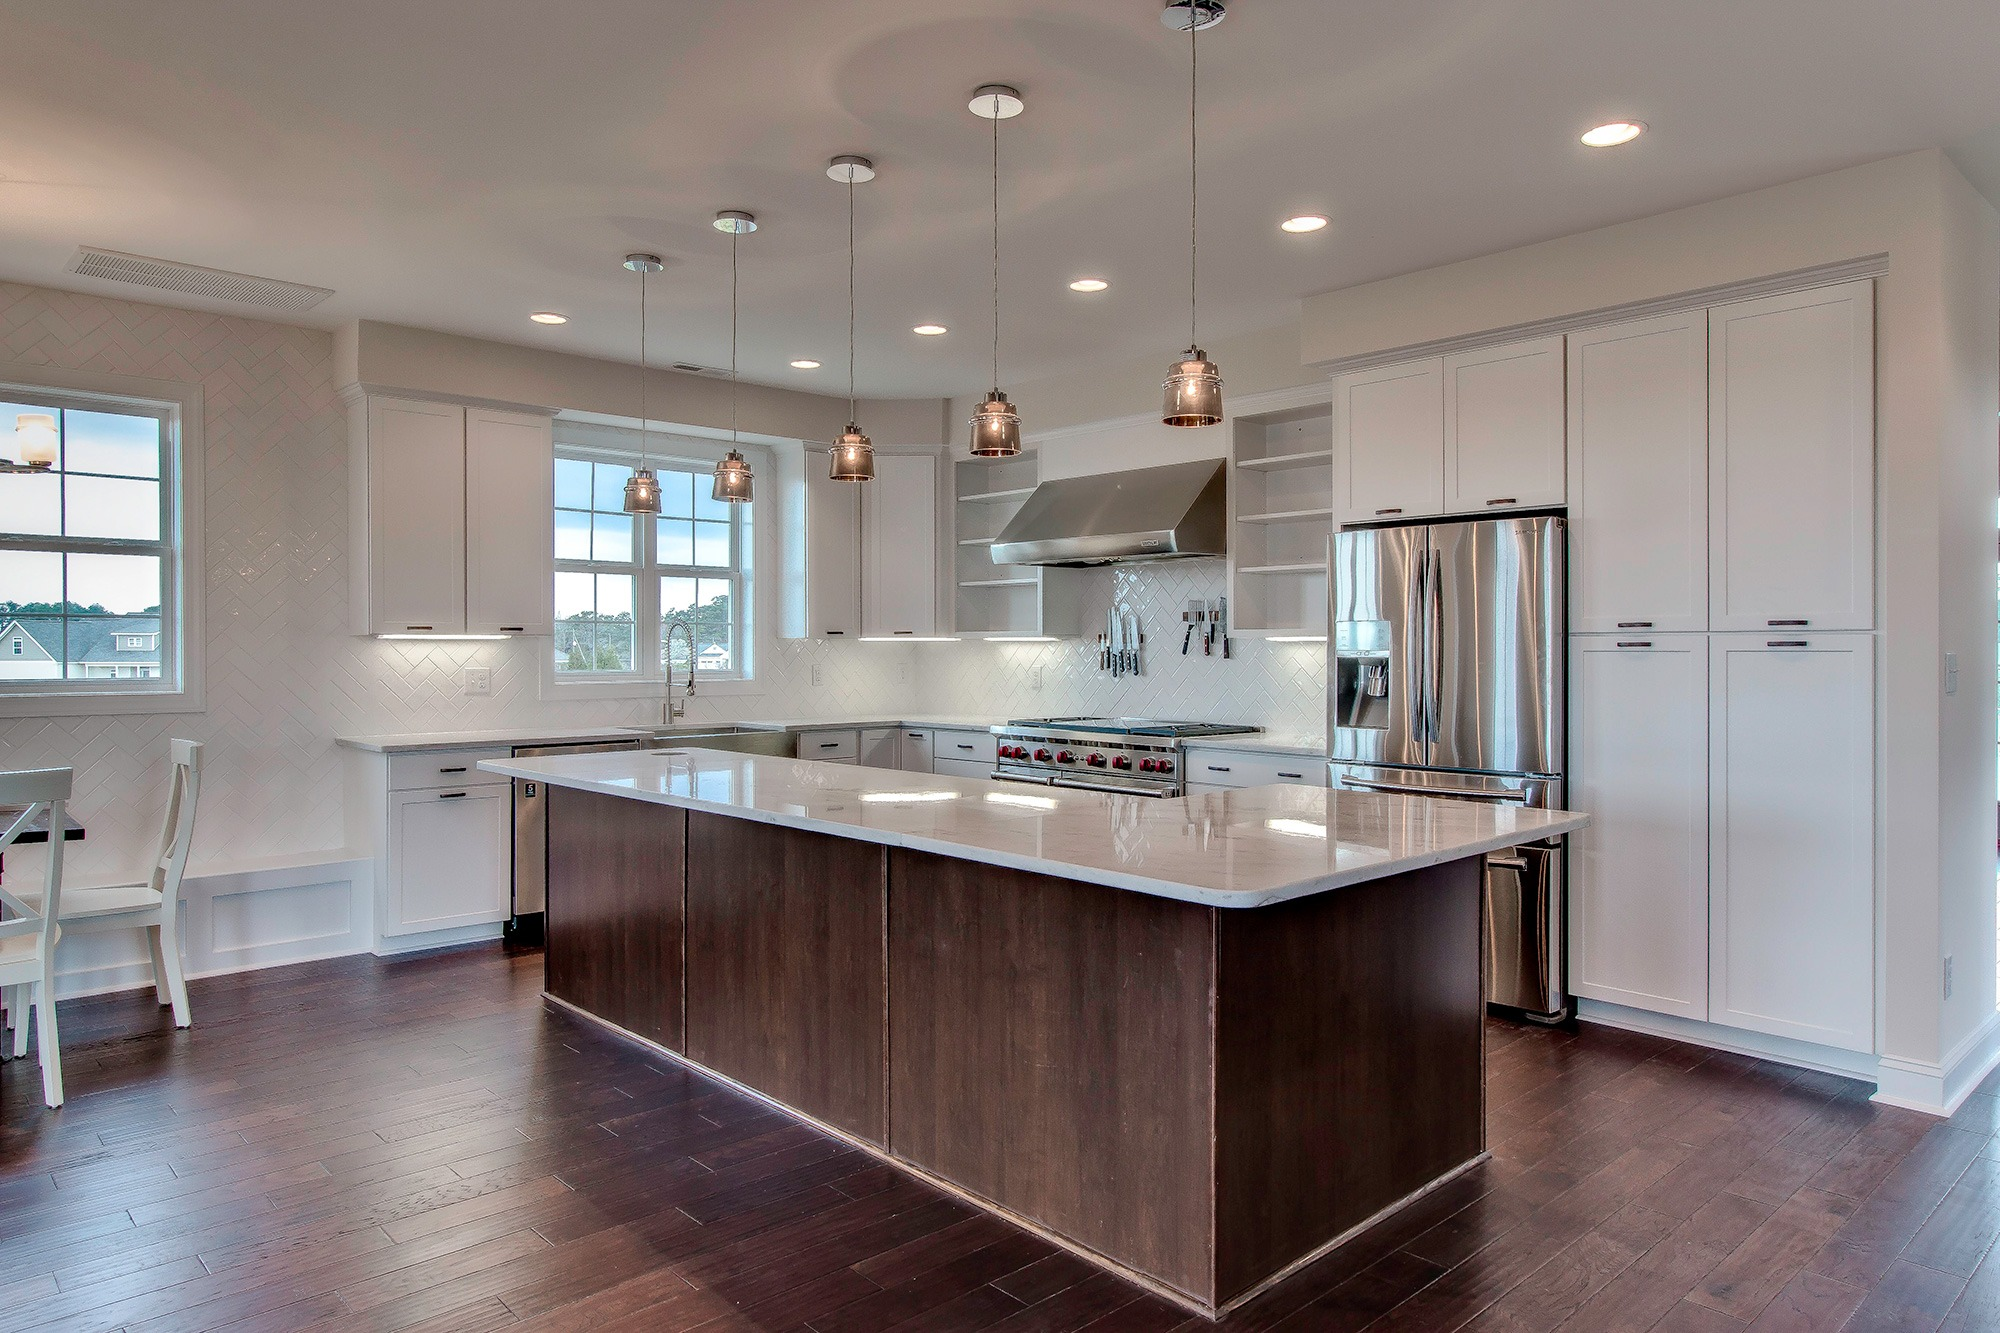 northcarolinacustomhomebuilderkitchen